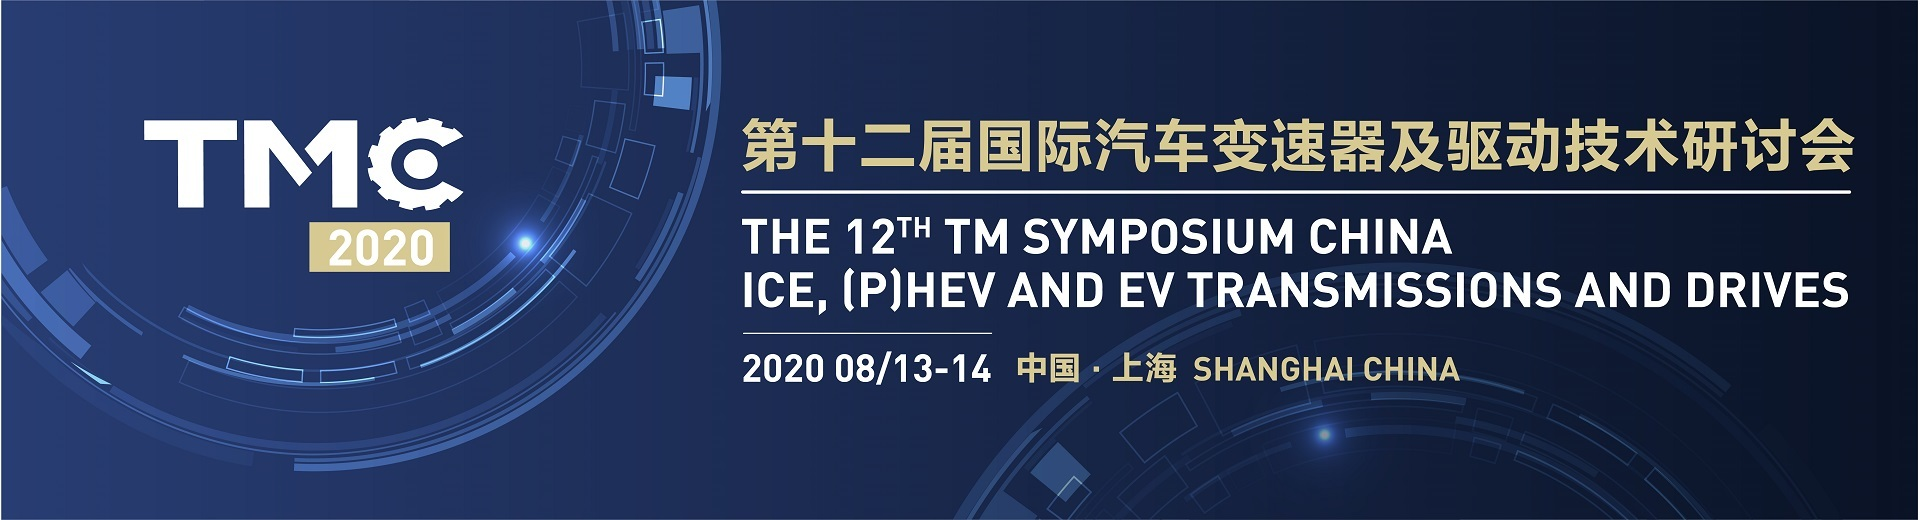 The 12th TM Symposium China ICE, (P)HEV and EV Transmissions and Drives